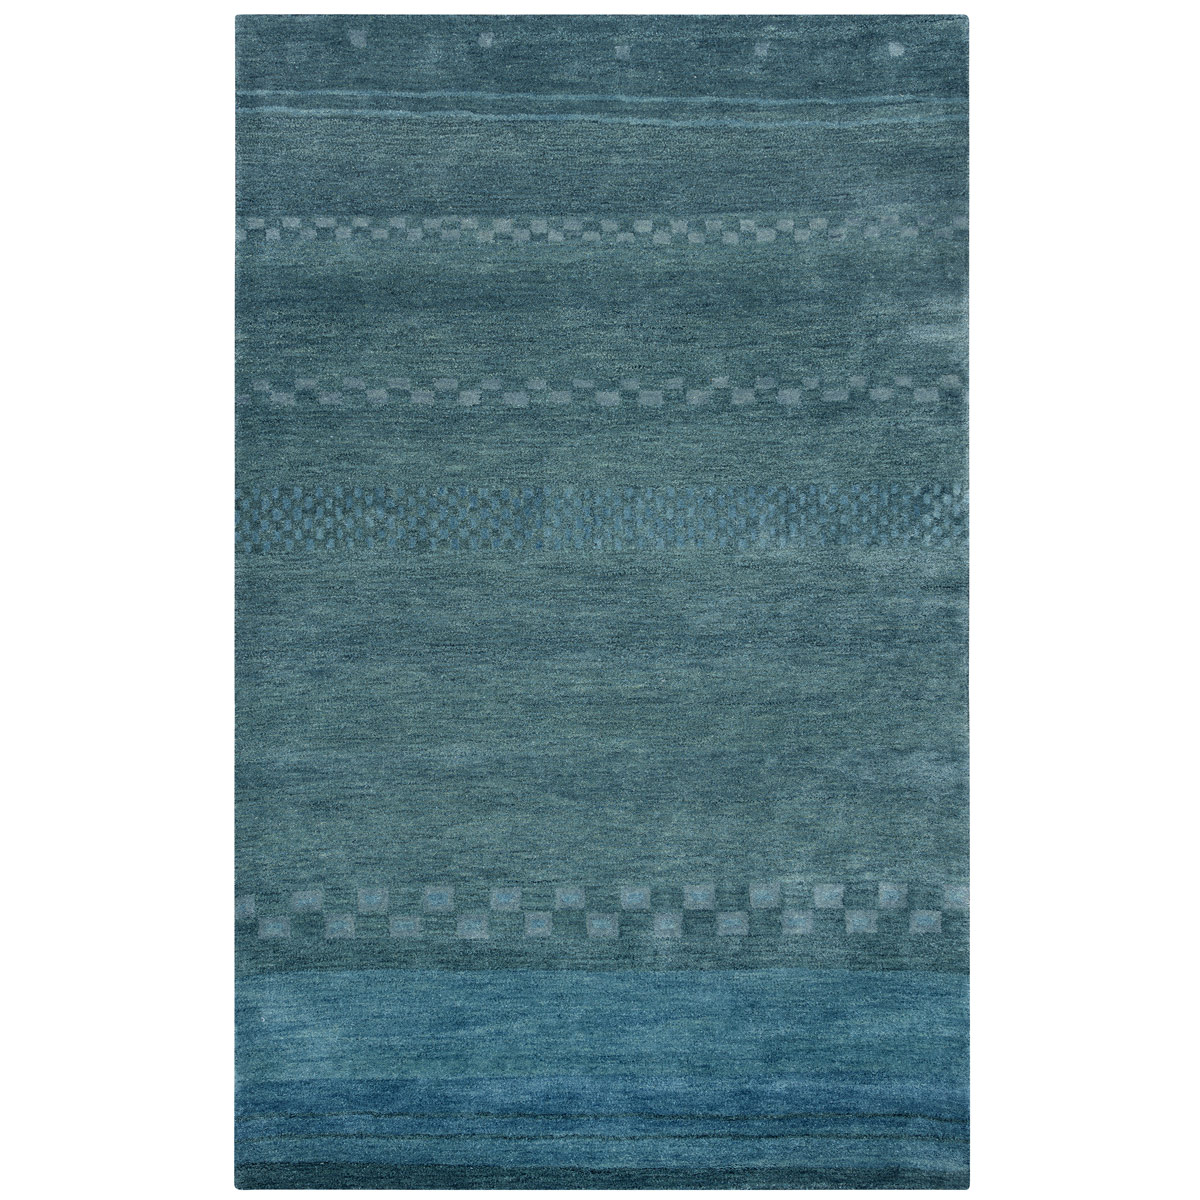 Mojave Blue Checks Rug - 5 x 8